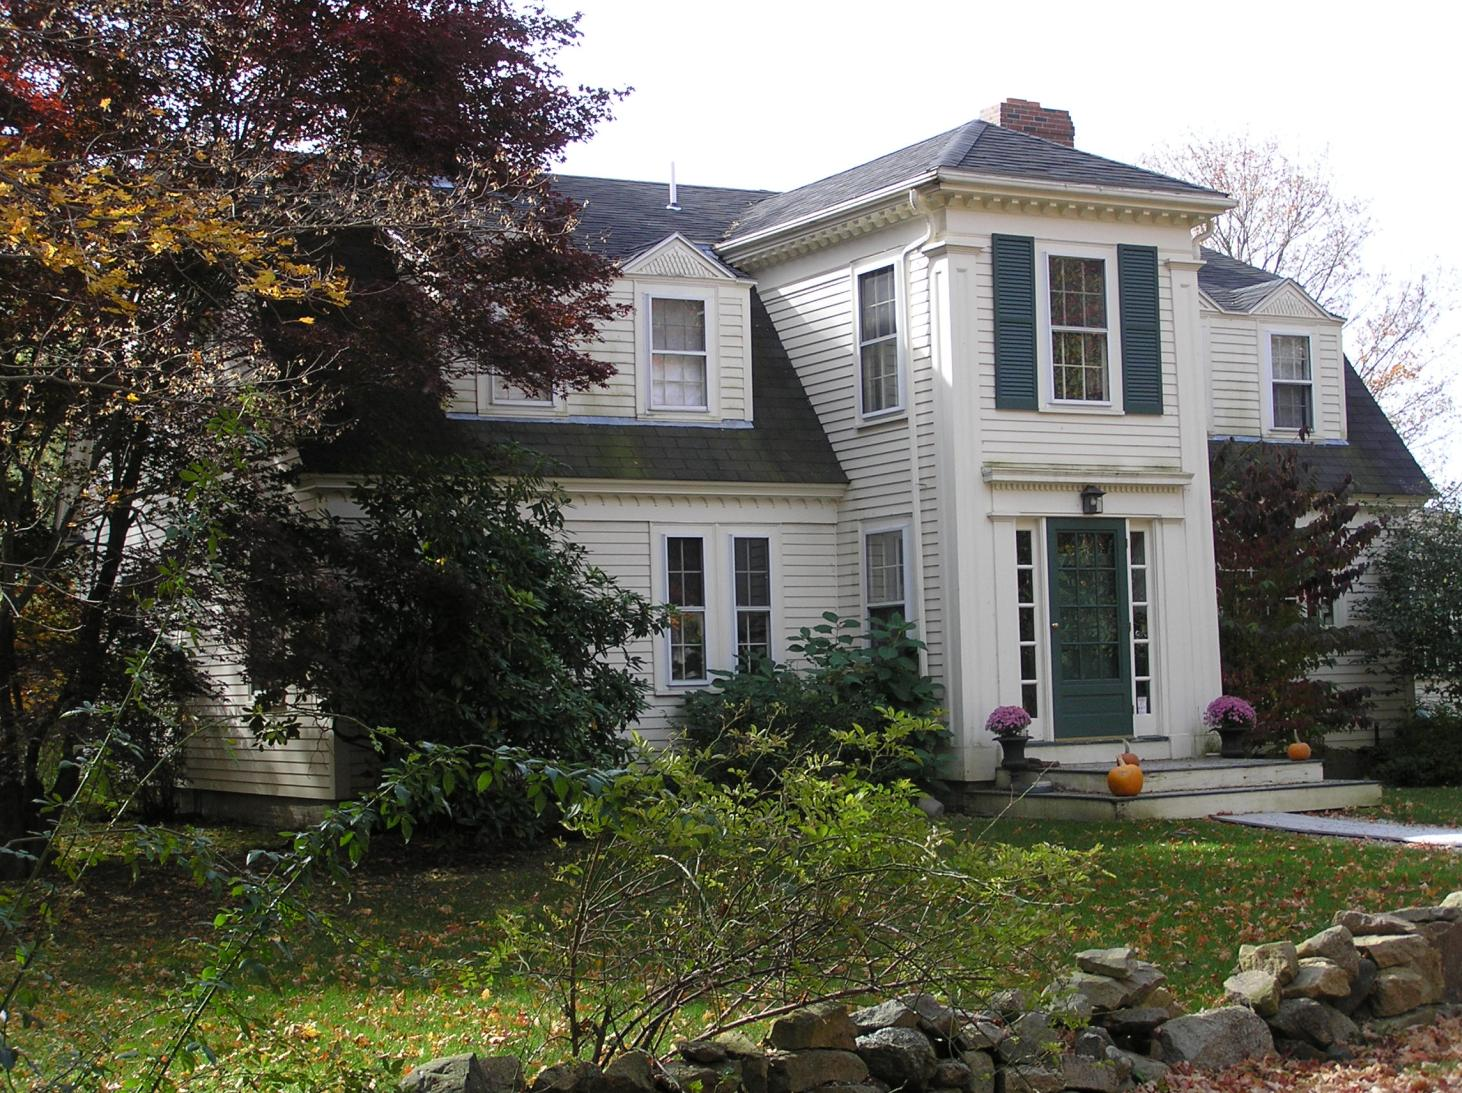 65 Candlewood Road, the Rhoda Kinsman house (b 1776)